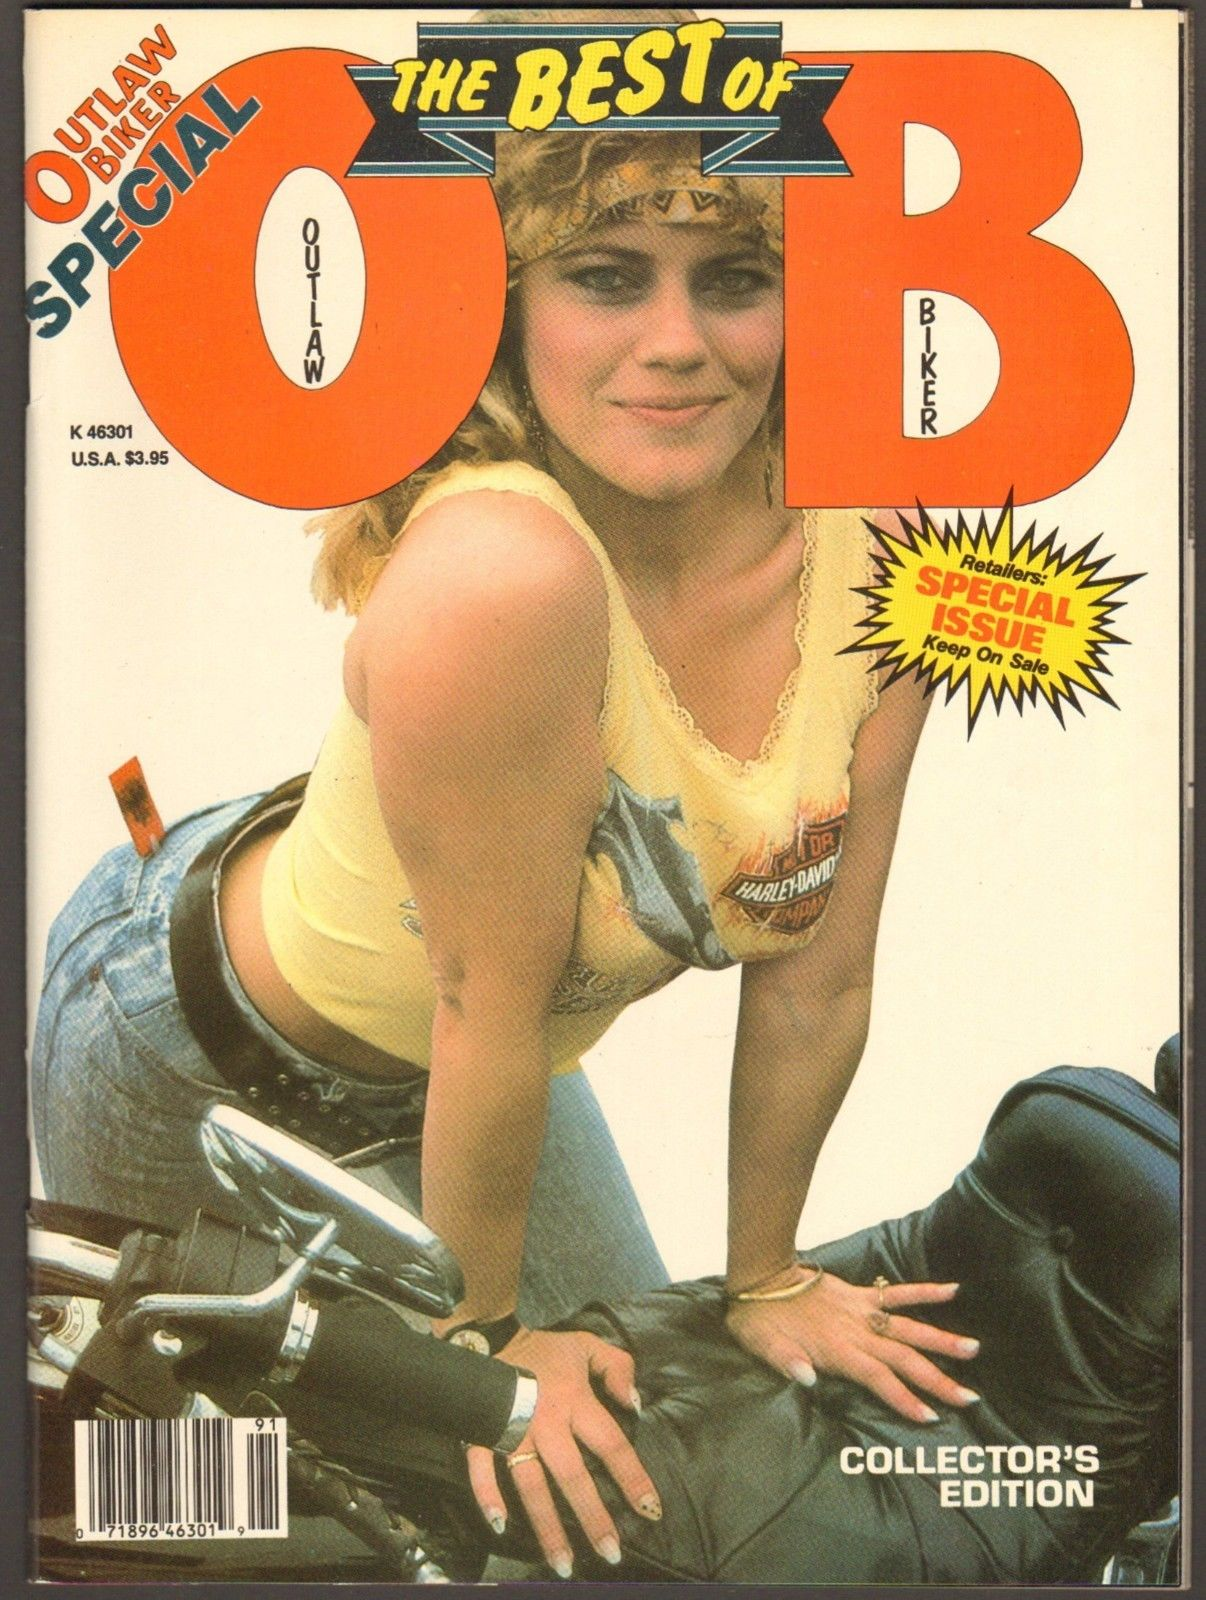 best of outlaw biker cover collector's edition